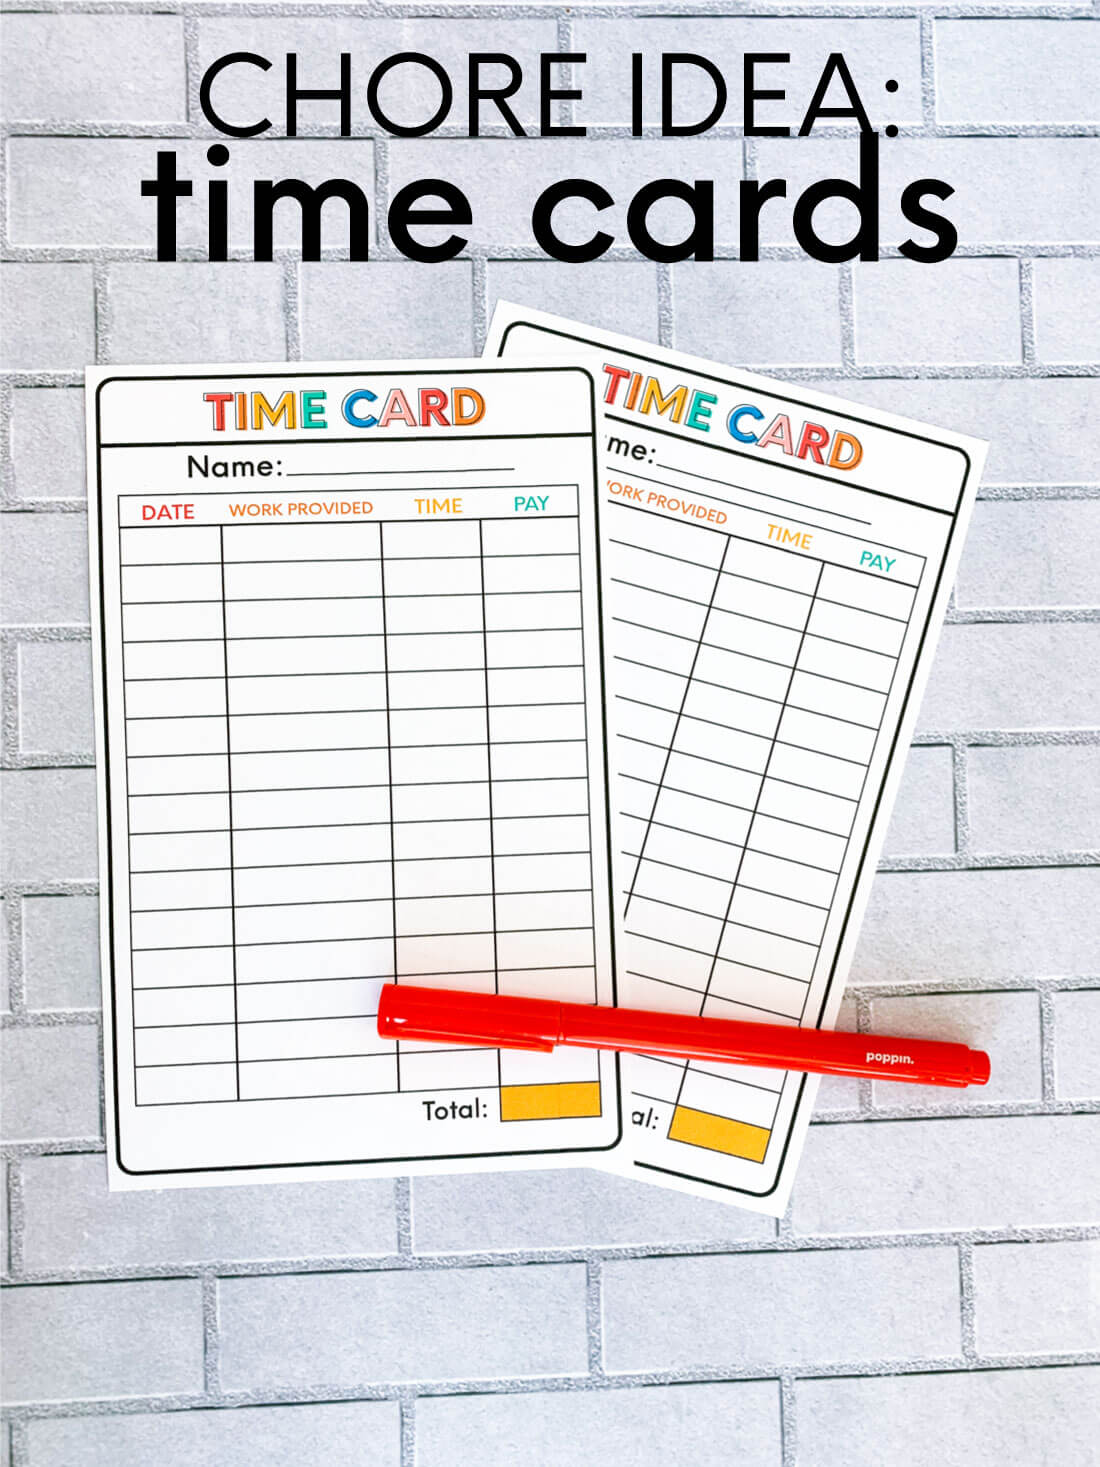 graphic about Time Card Printable named Chore Record Principle: Printable Season Card